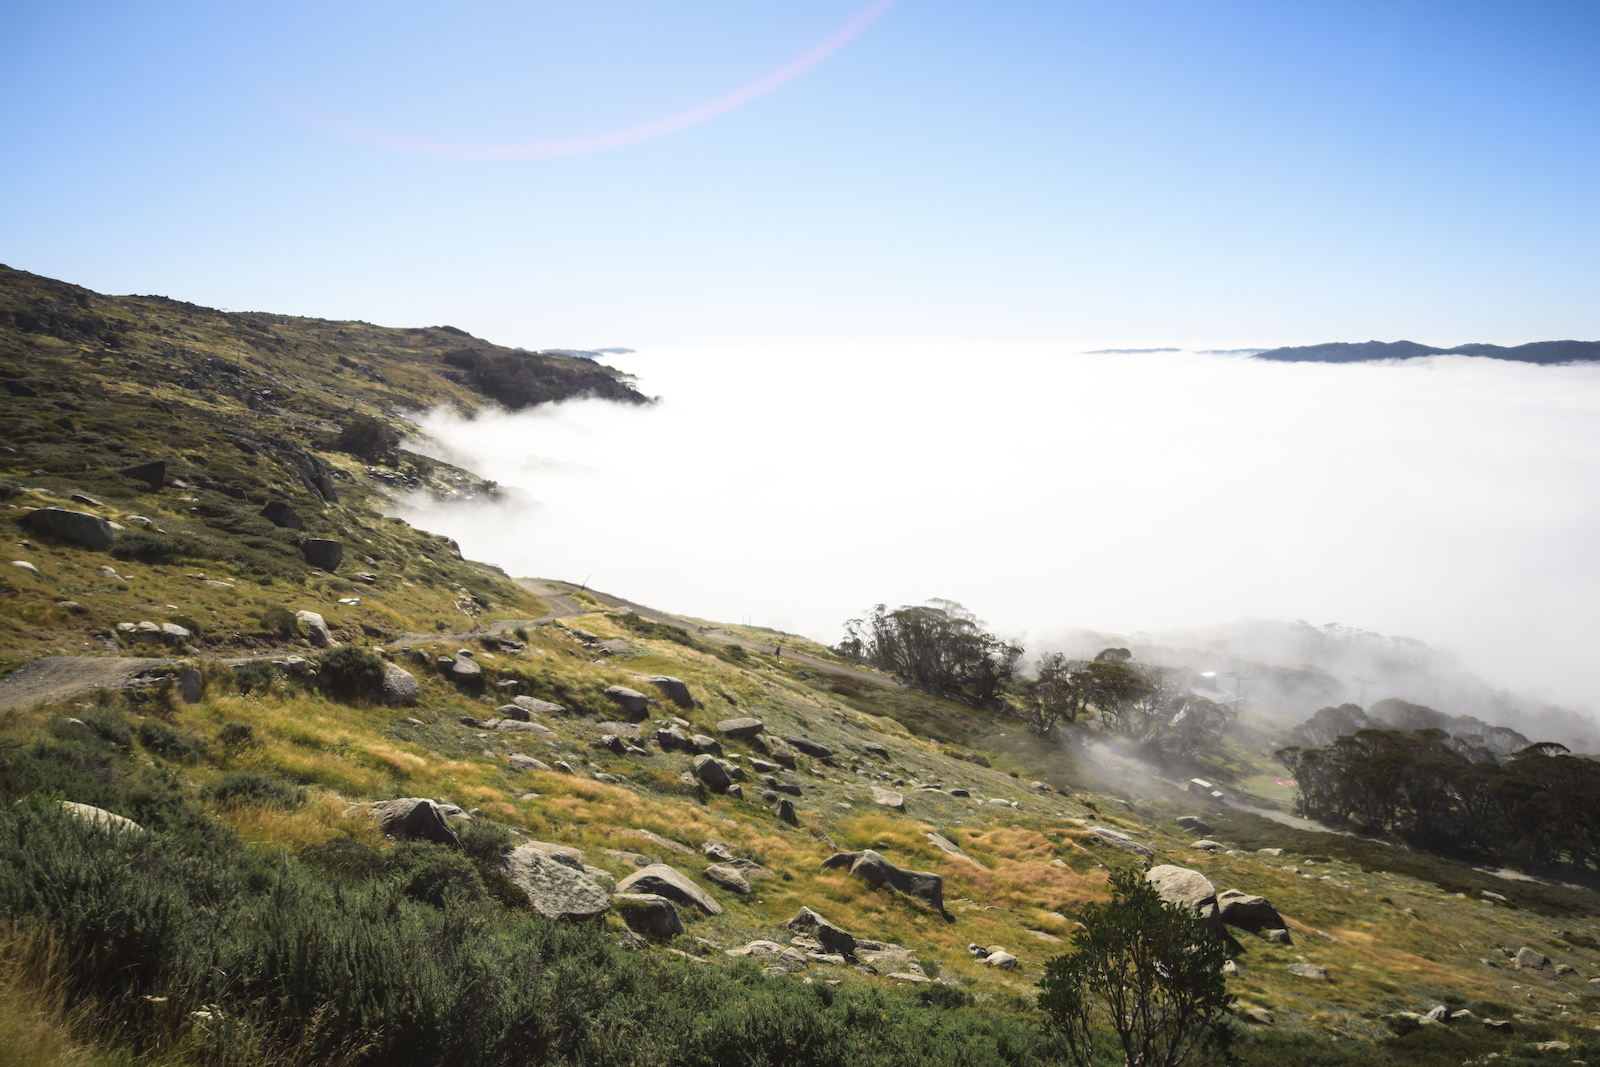 Sunday morning brought fog and lots of it. The whole valley was covered until it finally retreated around 10 30